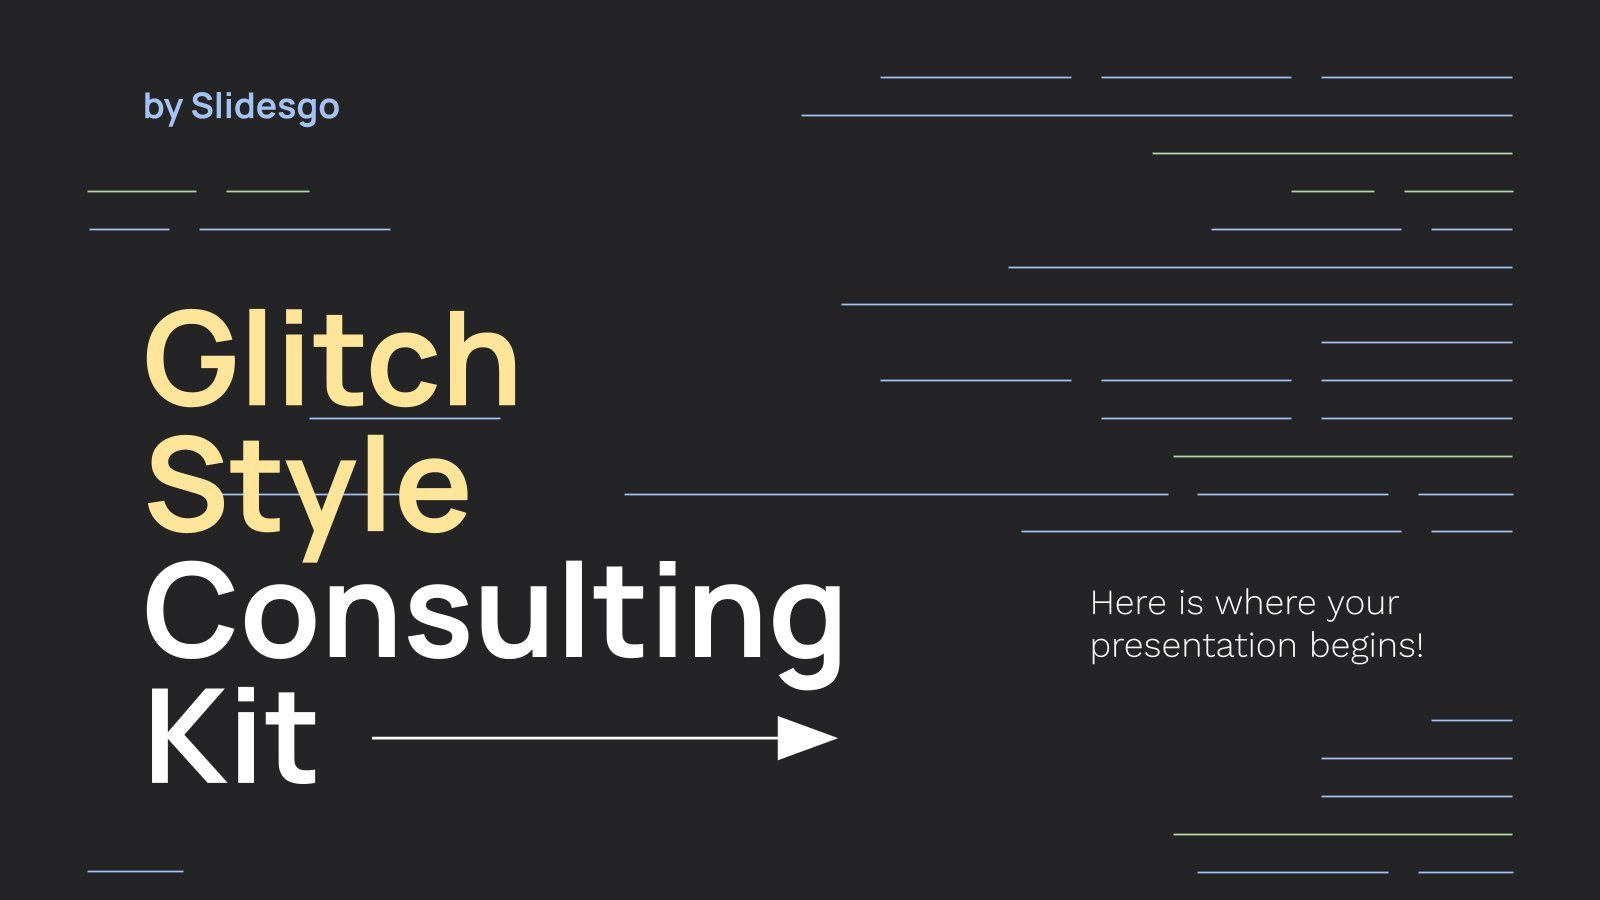 Glitch Style Consulting Kit presentation template